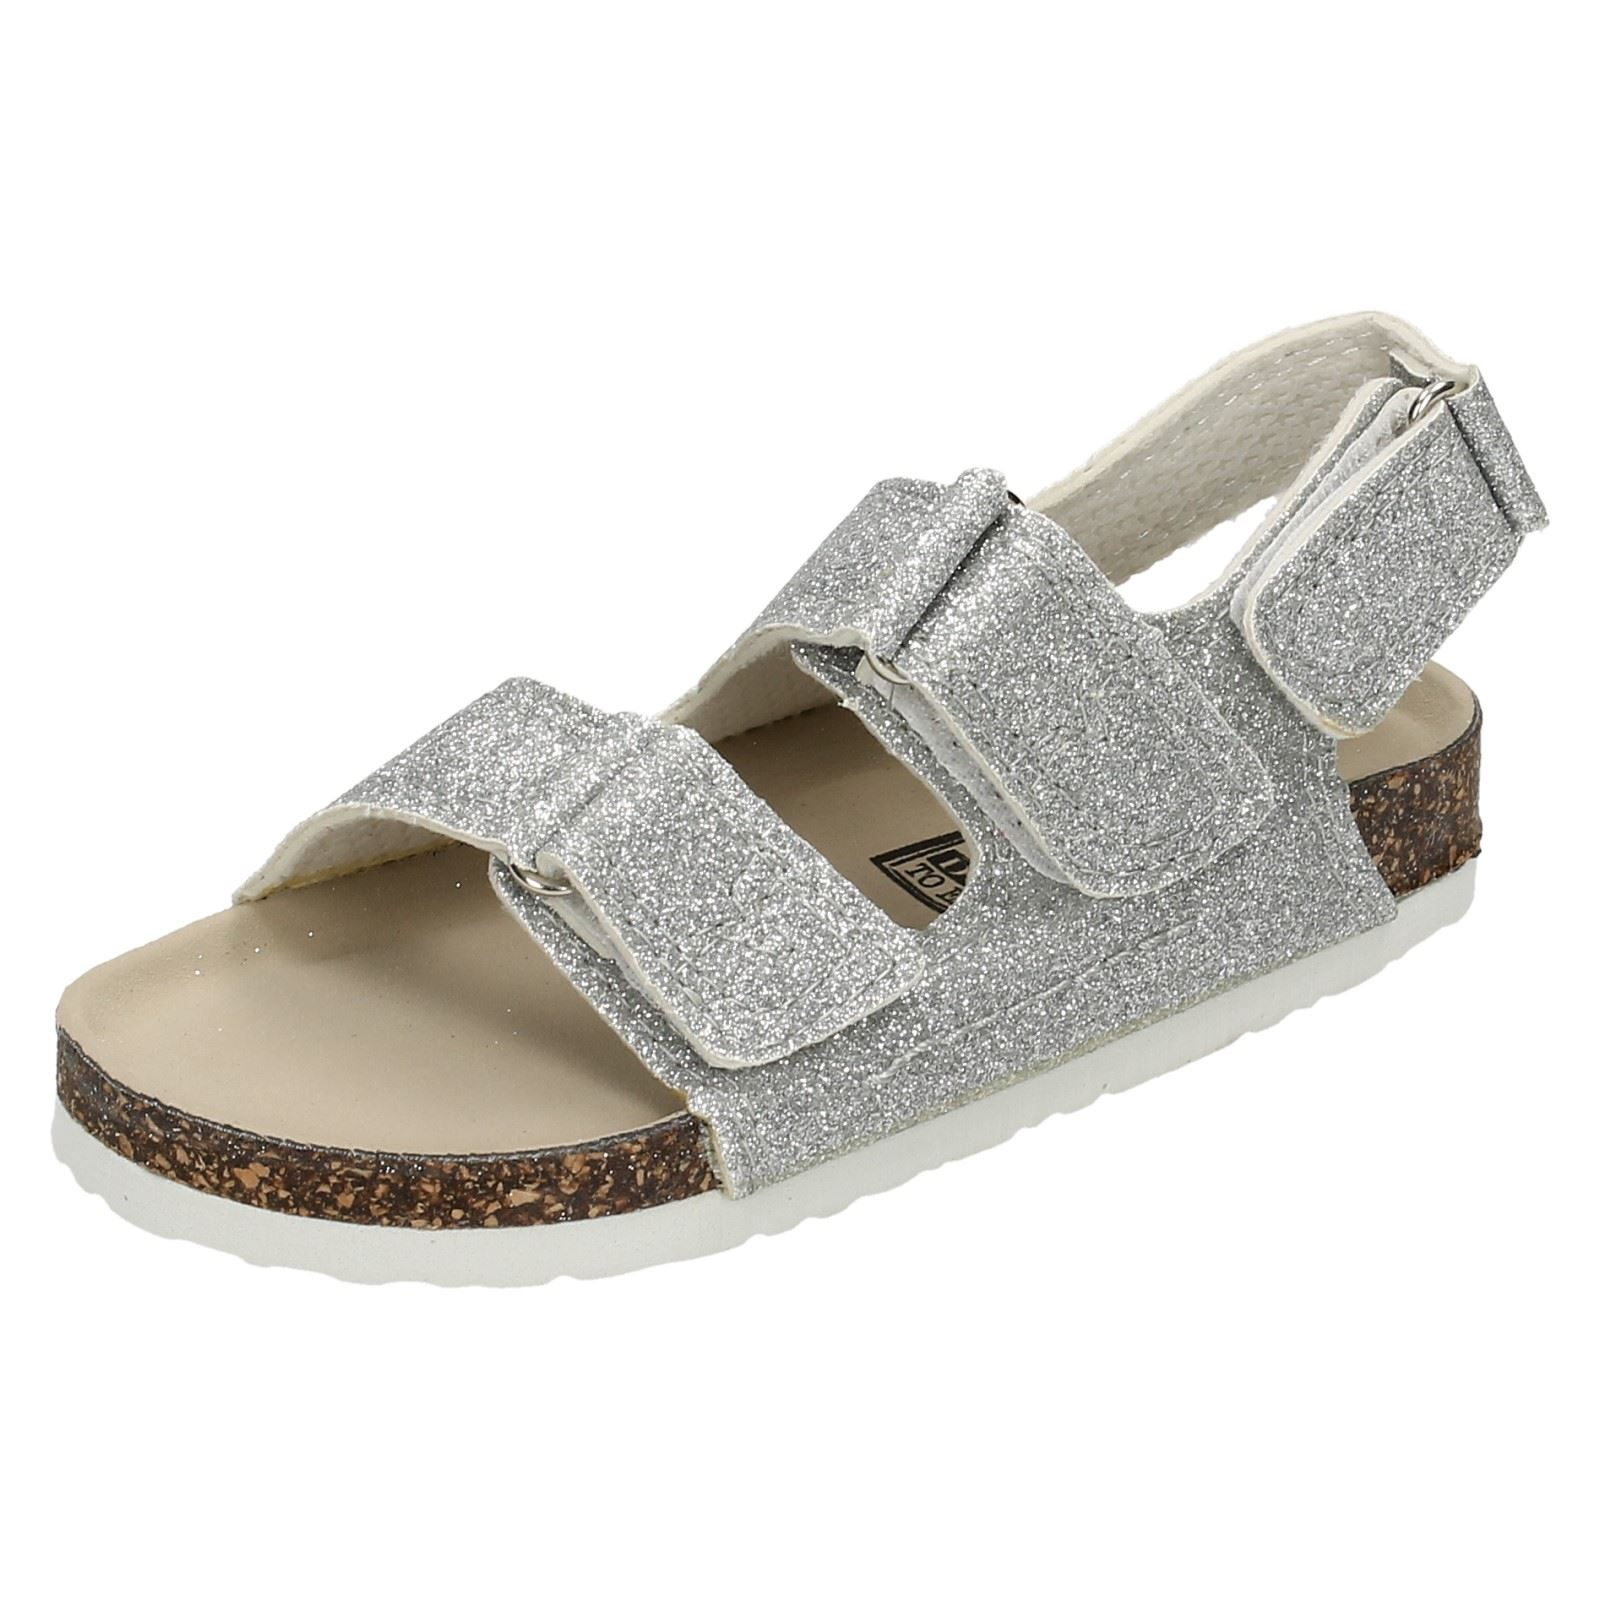 Chicas Down to Earth Sandalias H0050